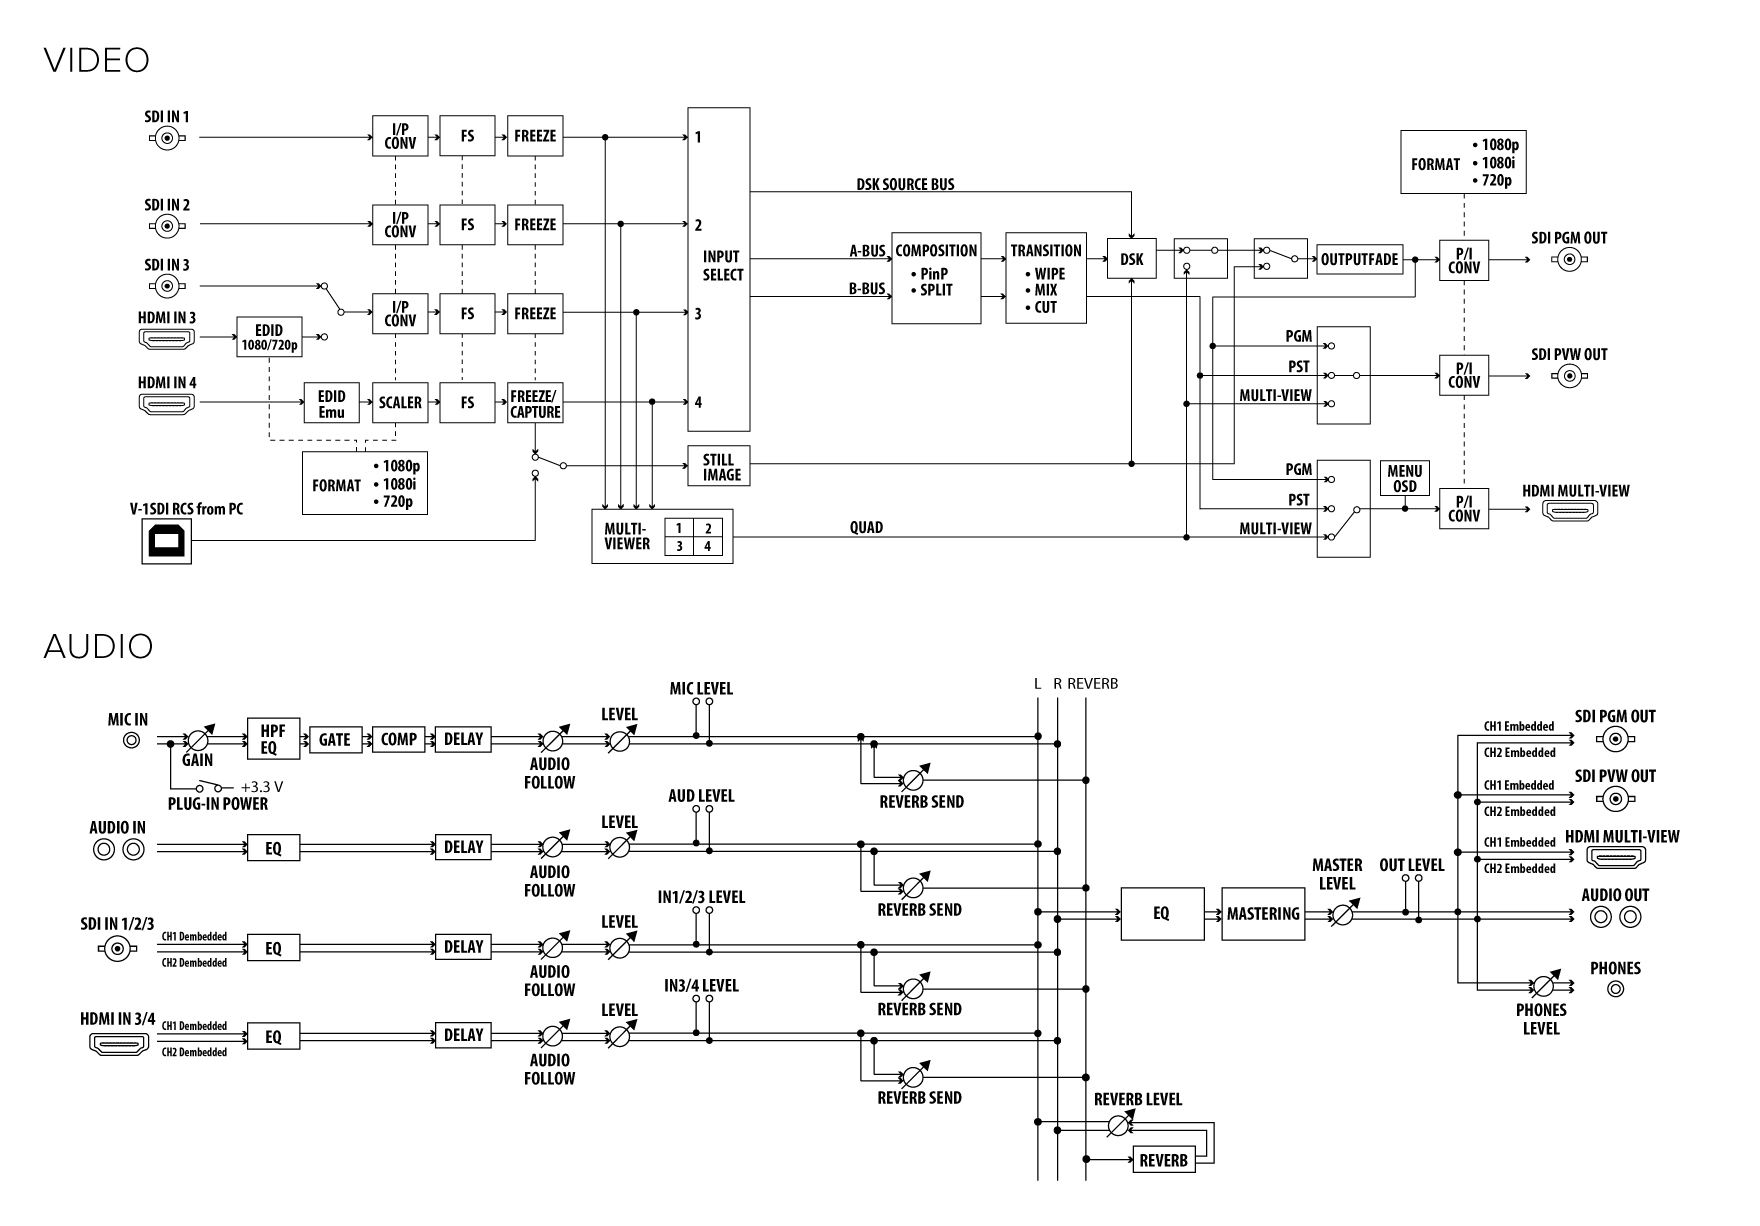 Roland Pro A V 1sdi 3g Sdi Video Switcher Computer Hardware Diagram Block Jpg Cad Data